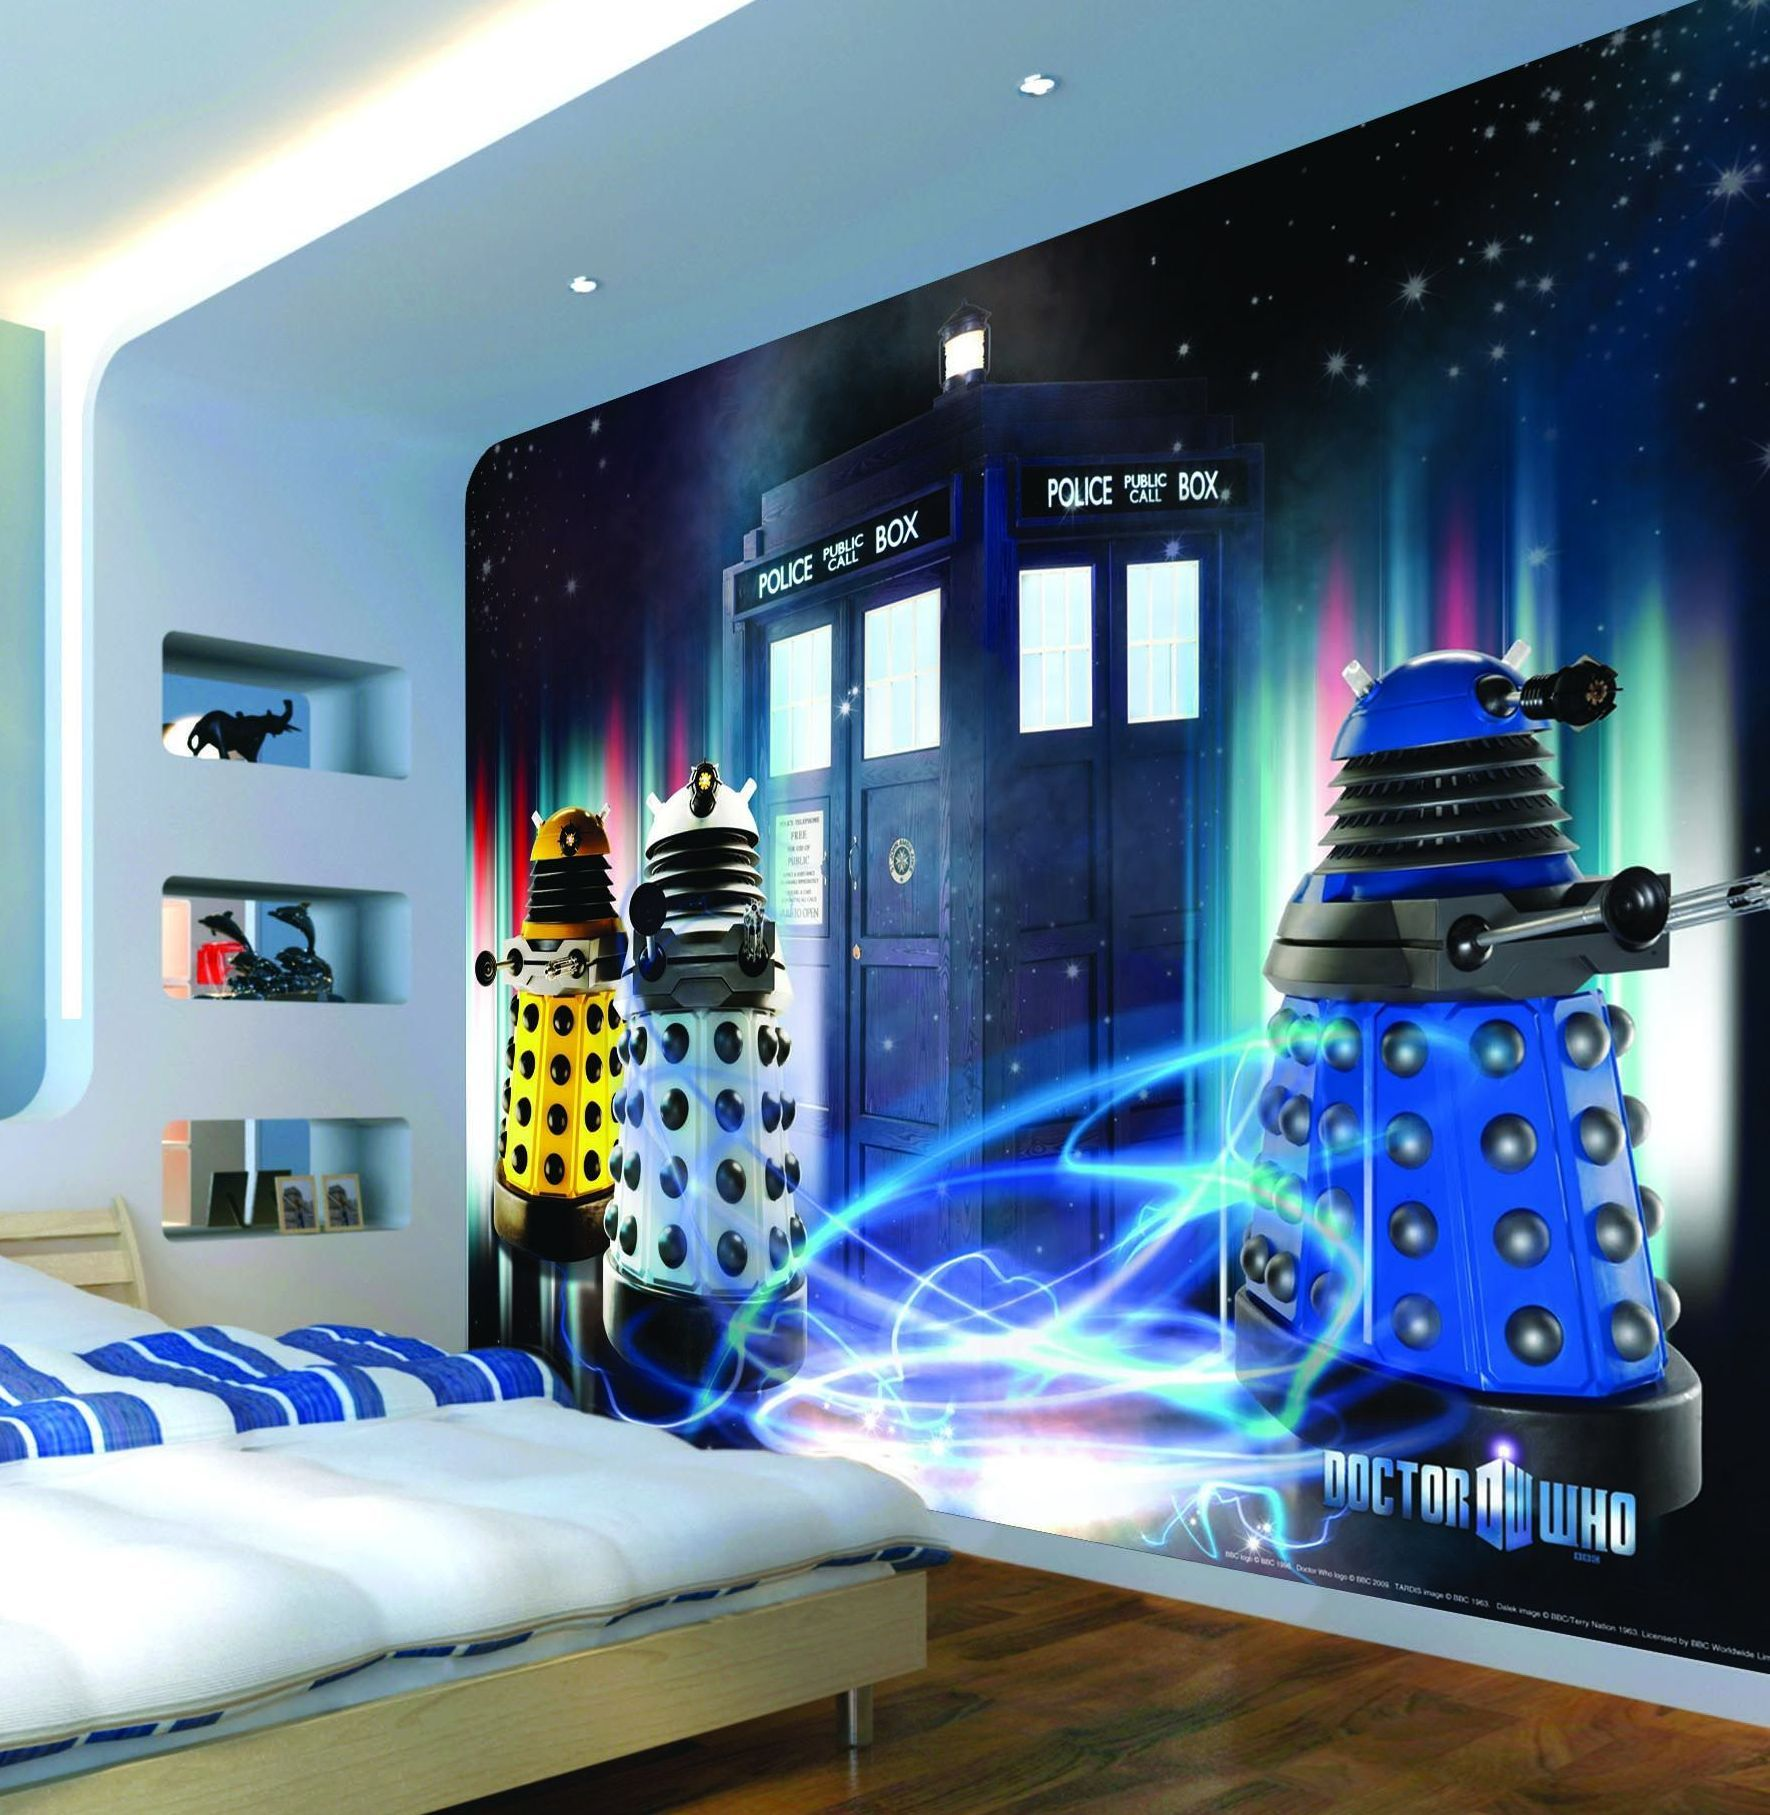 Beautiful Dr Who Daleks And Tardis Mural Daleks And Tardis)   Murals Murals    Officially Licensed Dr Who Mural U2013 Showing The Tardis Surrounded By Daleks,  ...